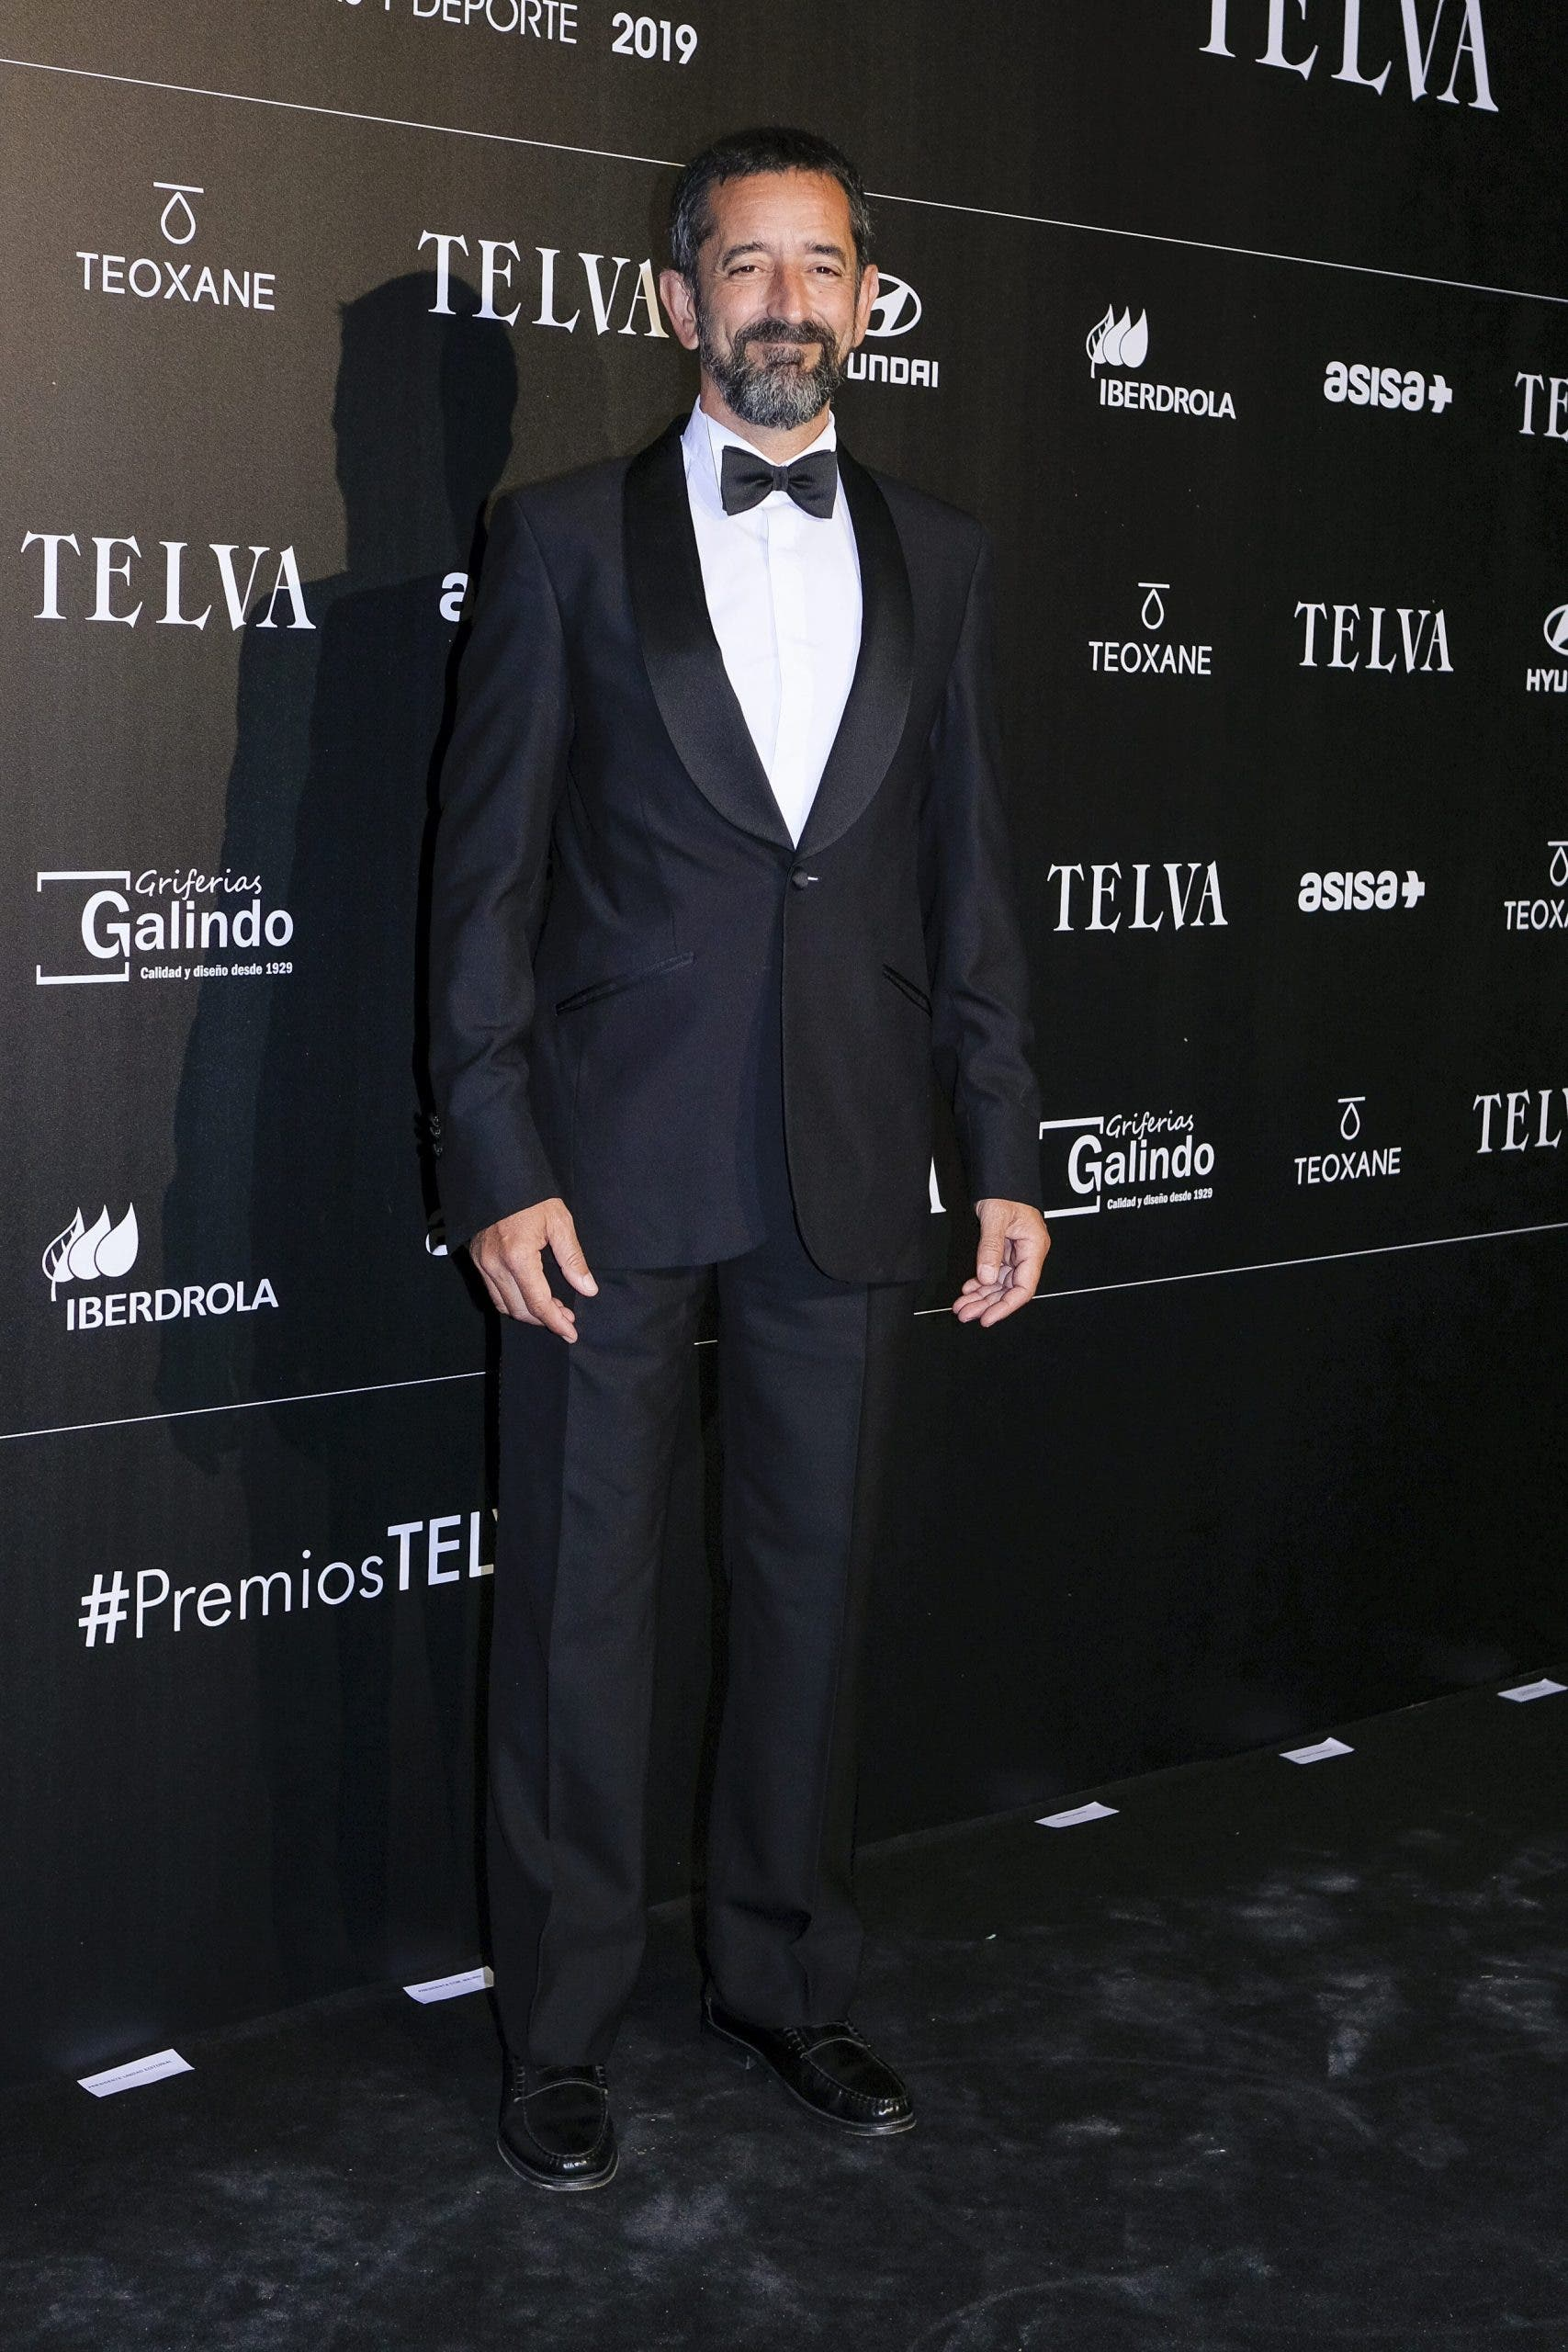 Cavadas at an award ceremony in Madrid in 2019